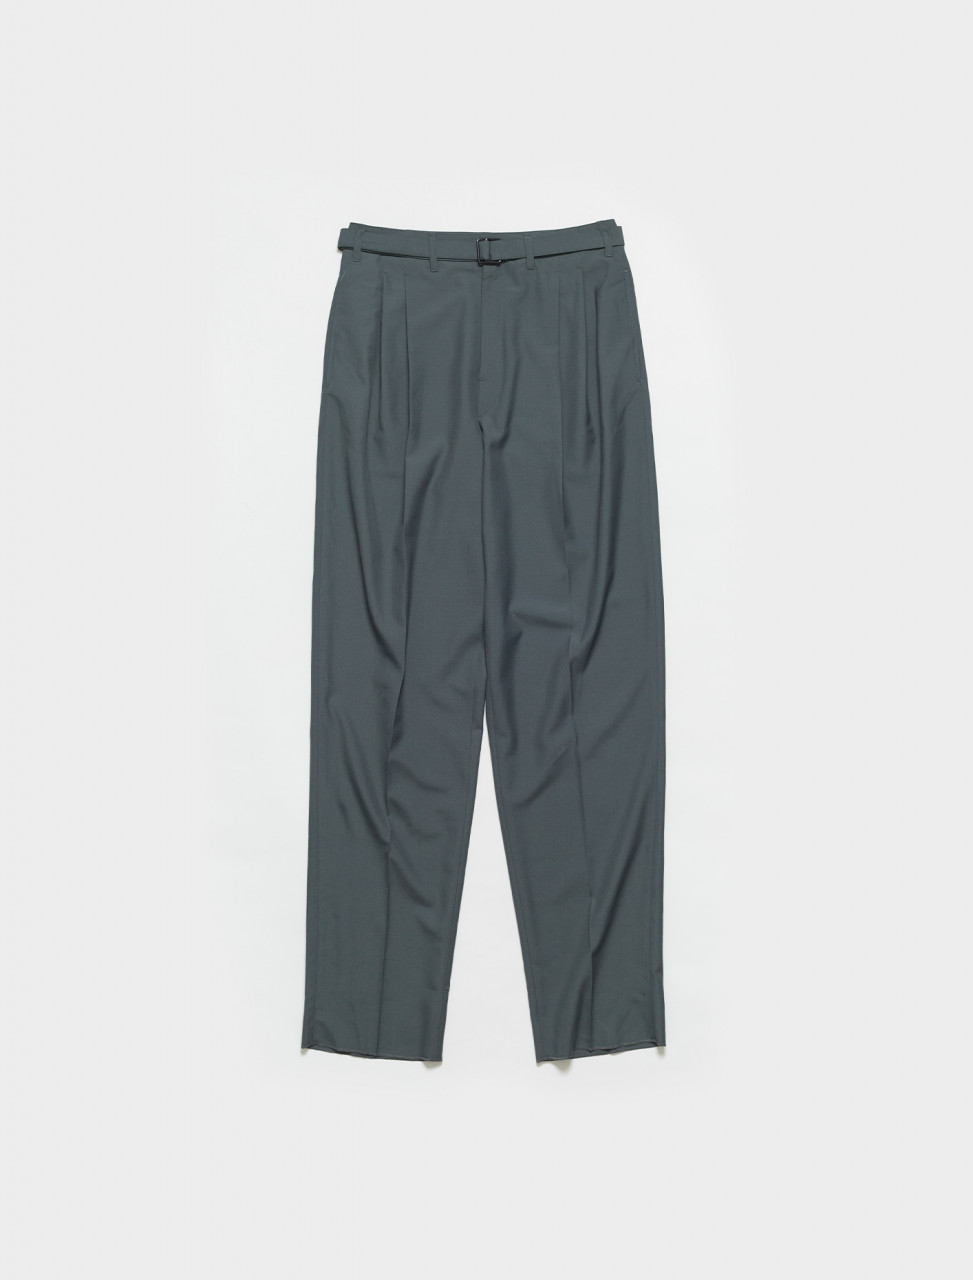 M-211-PA151-LF414-935 LEMAIRE BELTED PLEAT PANTS IN IRON GREY